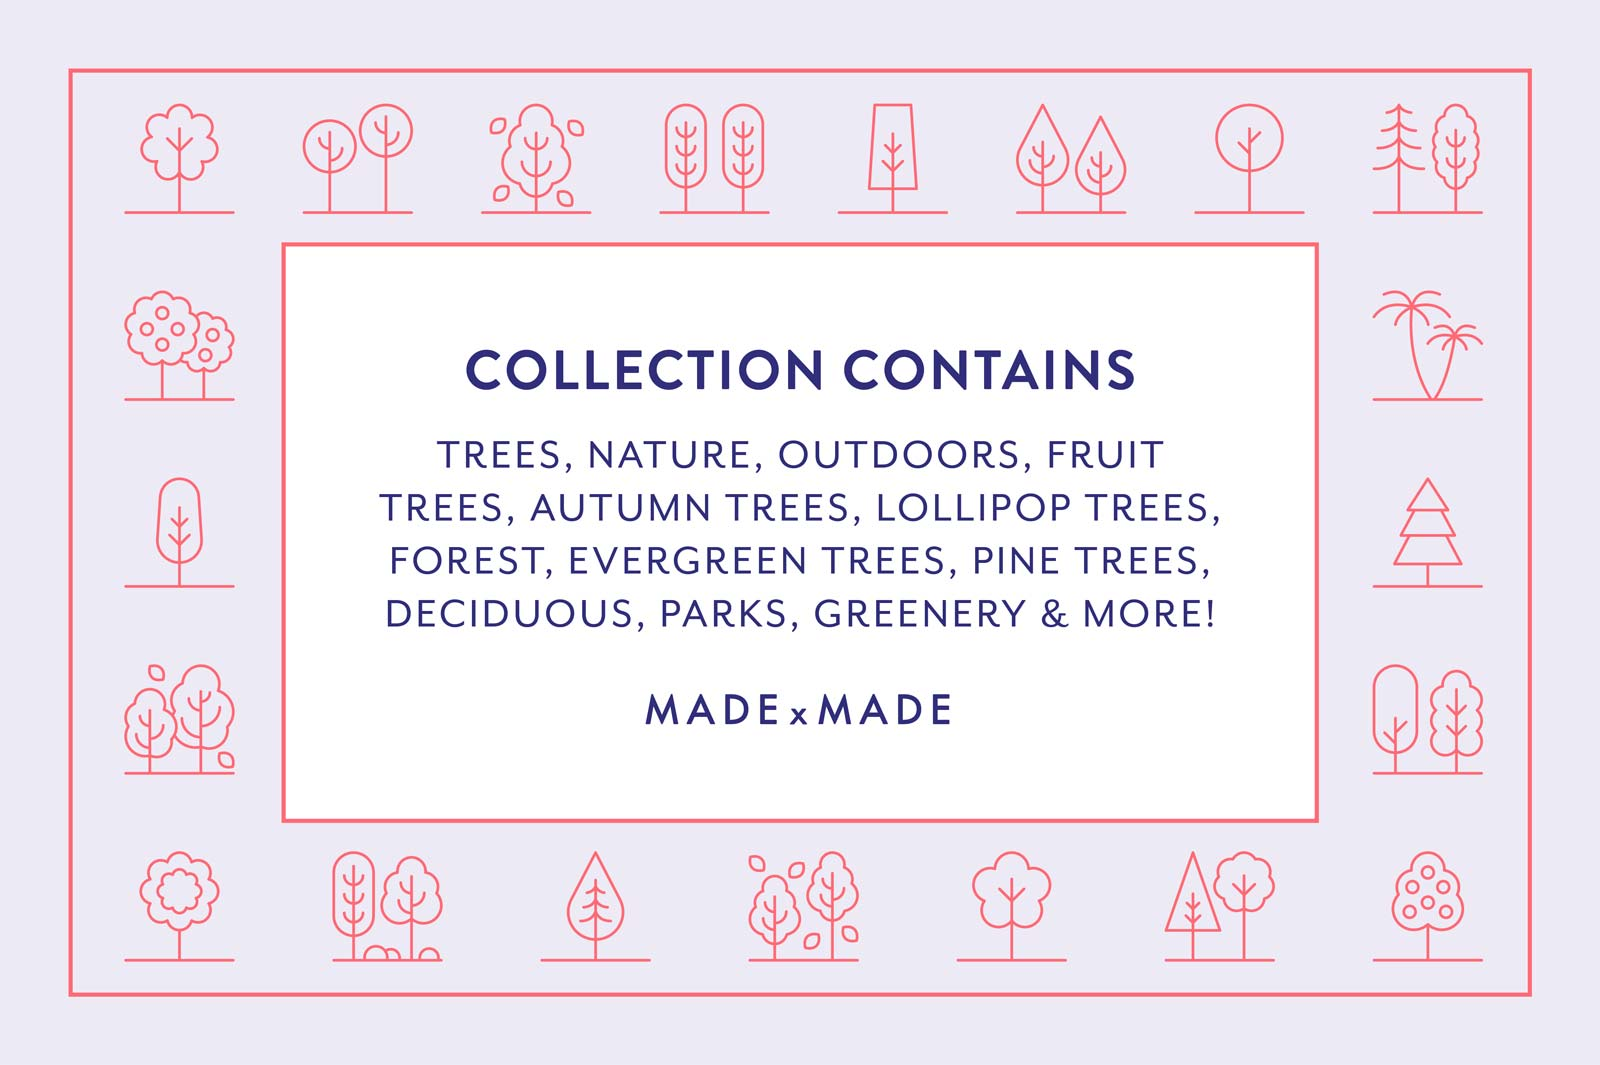 made x made icons trees